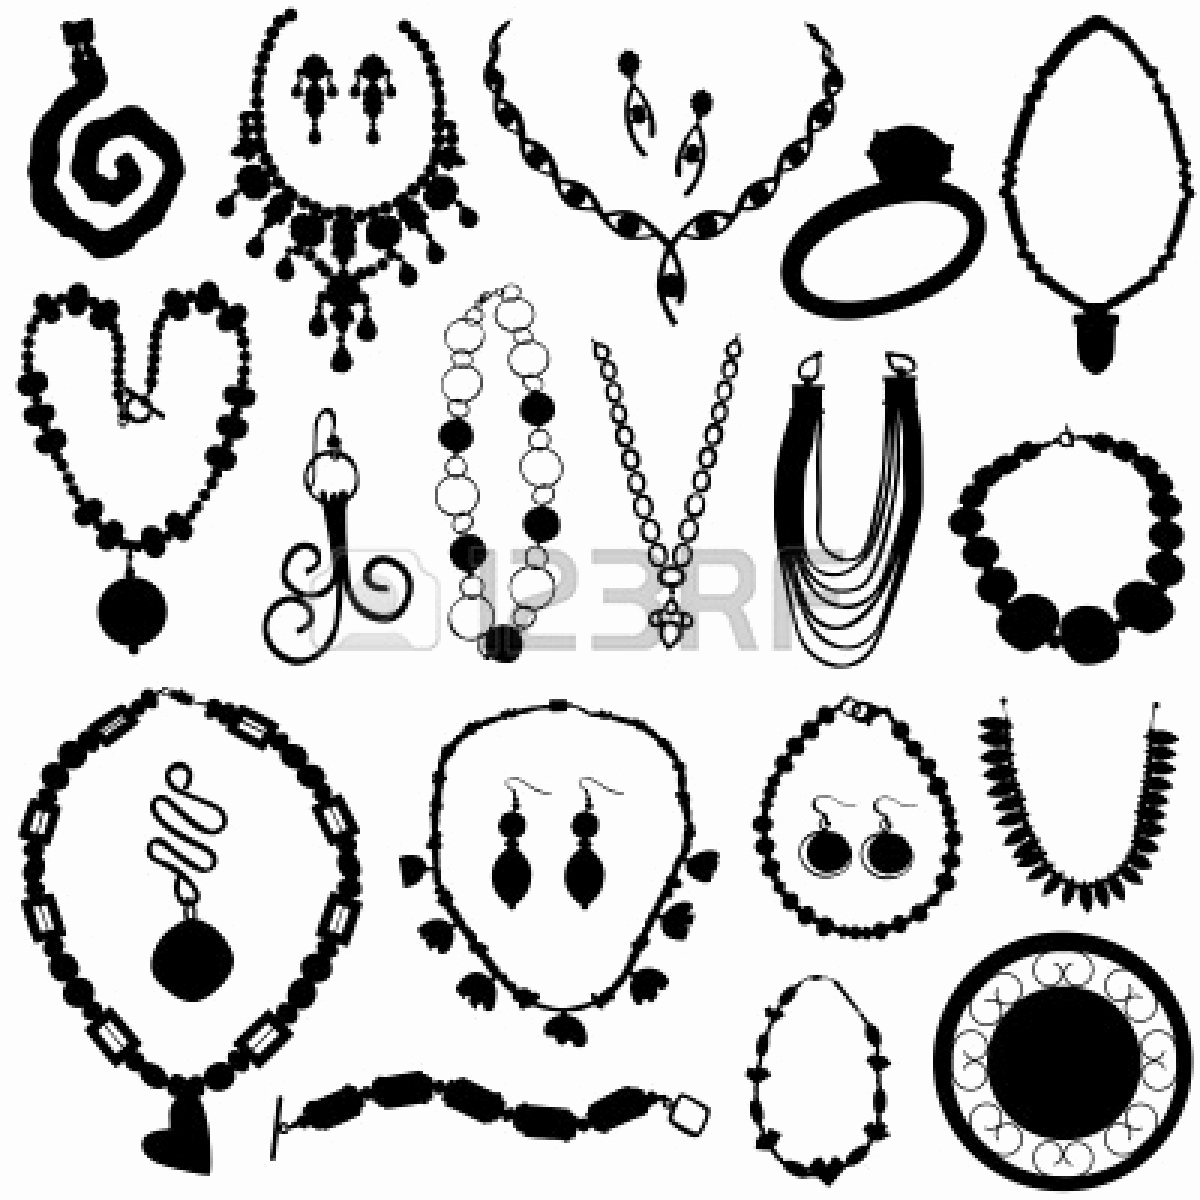 Earring clipart black and white New Jewelry Clip Art Many.